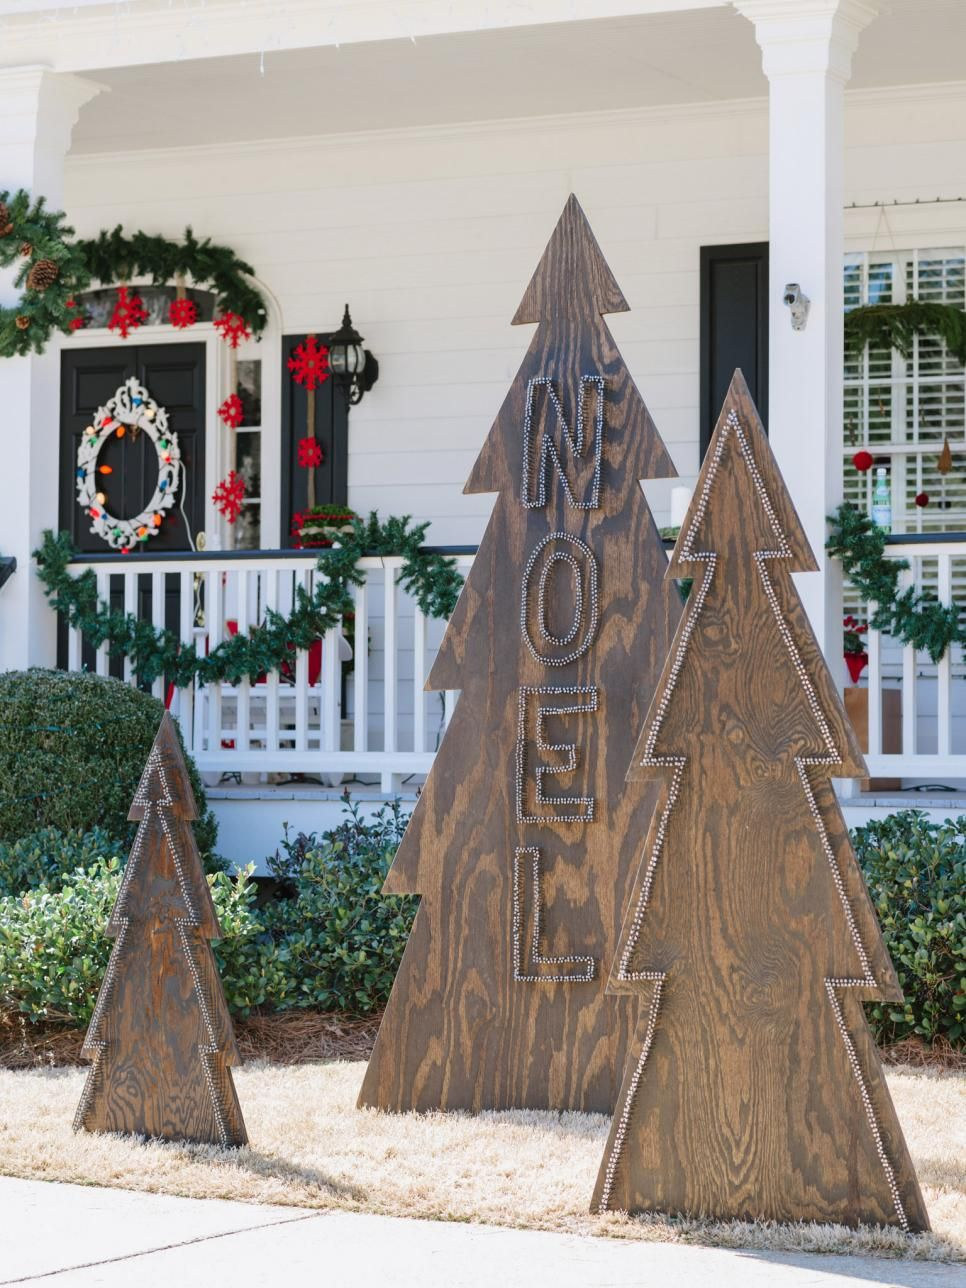 35 crafty outdoor holiday decorating ideas solutioingenieria Image collections